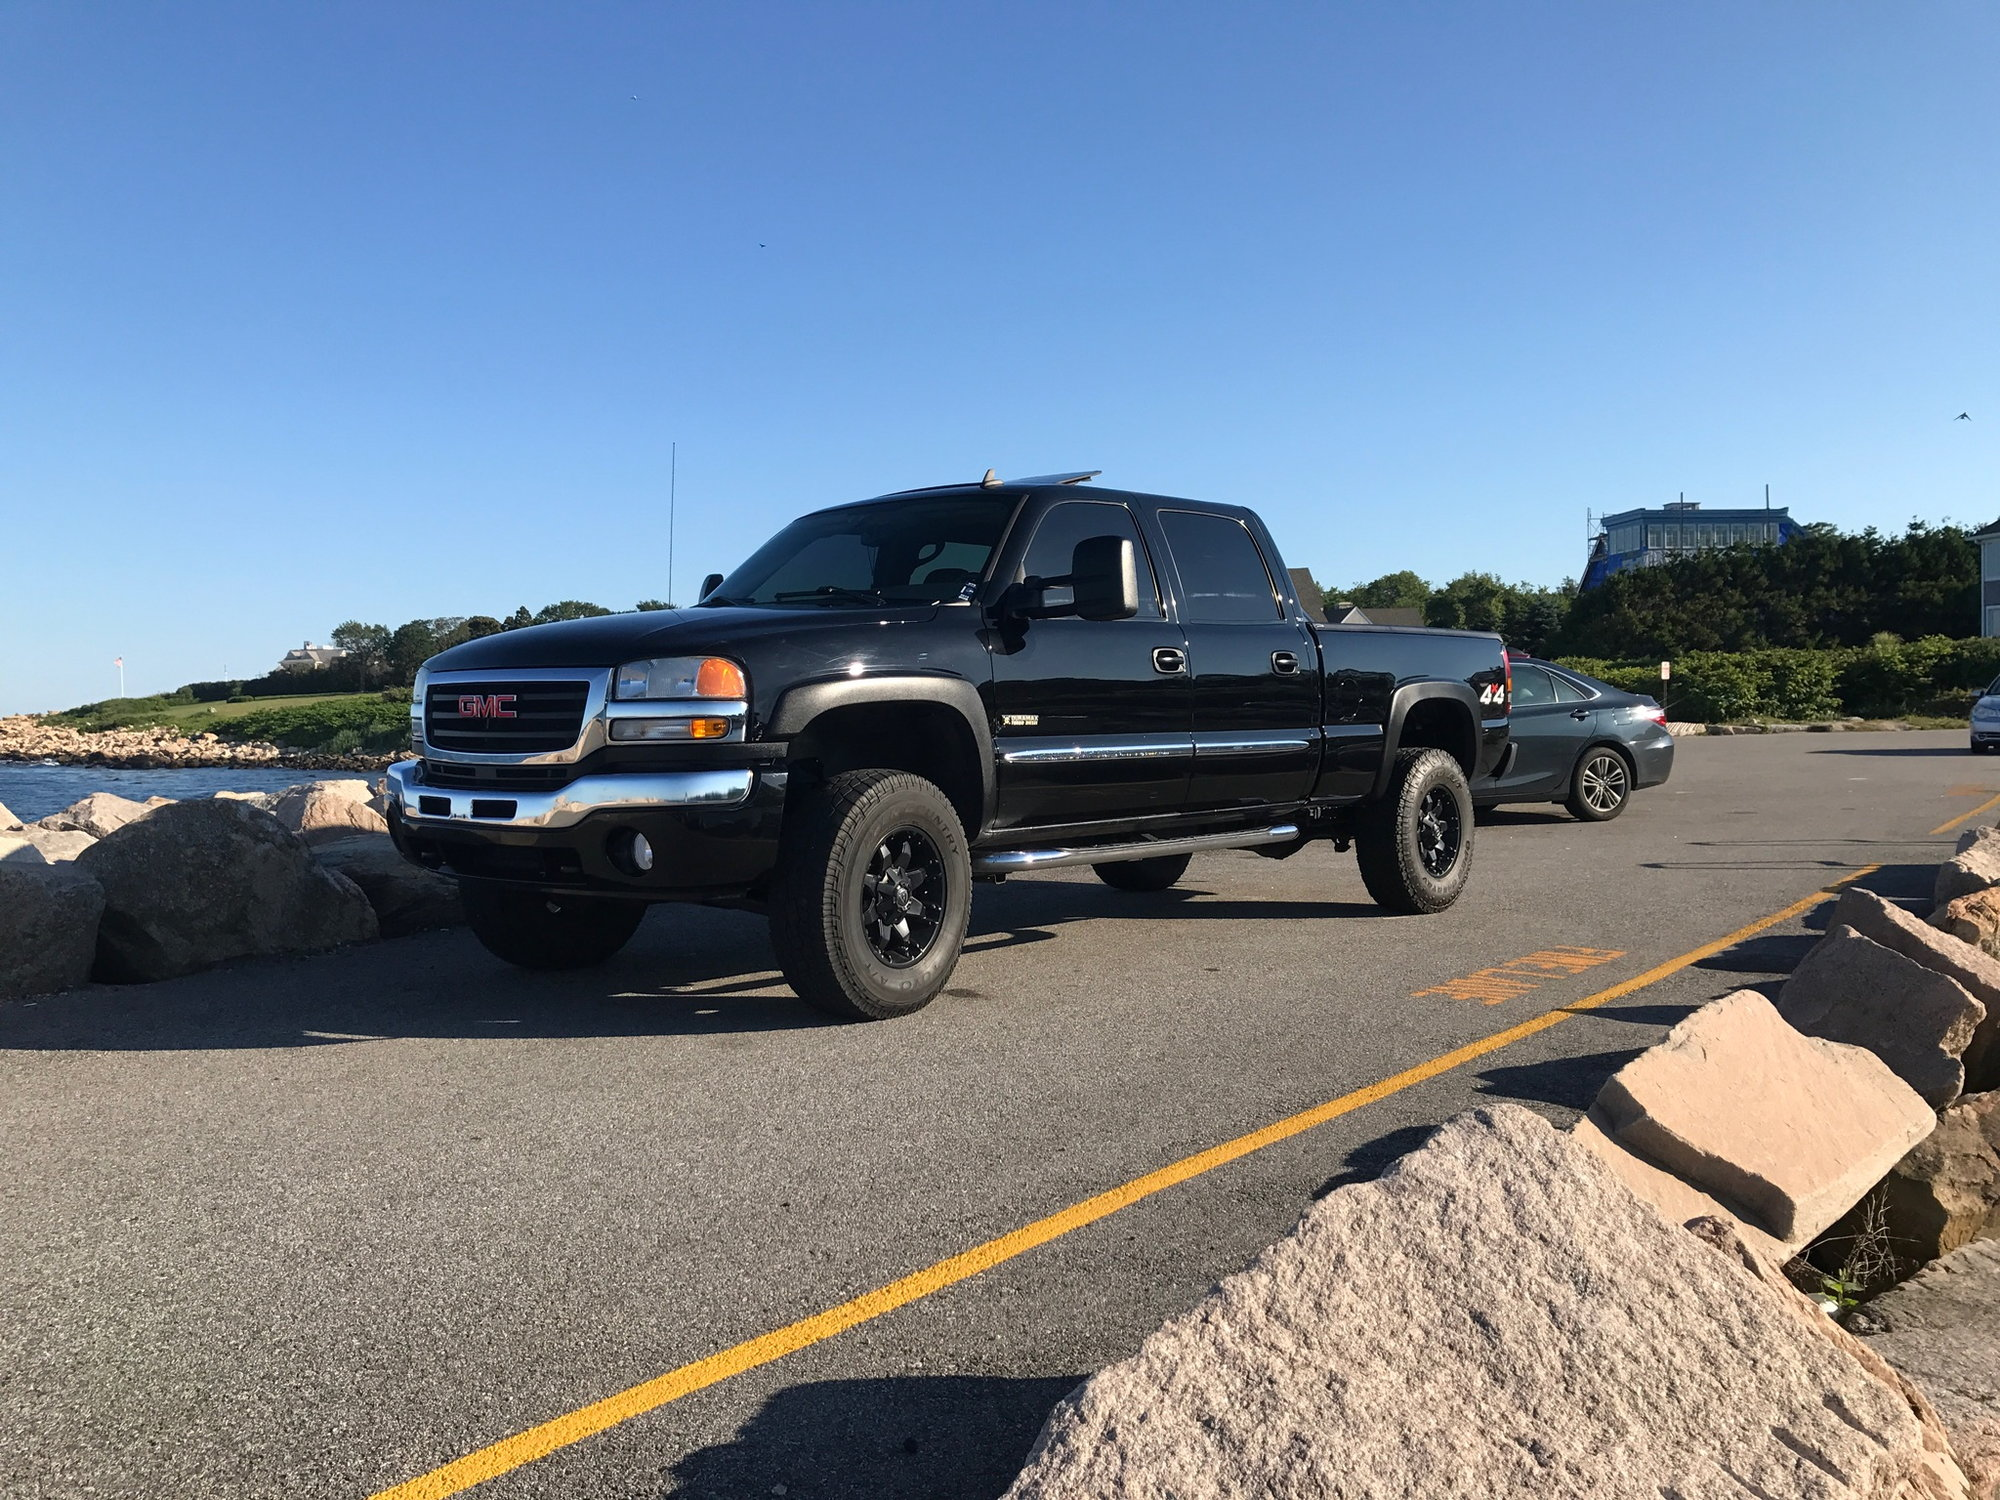 2006 Gmc Sierra Lbz Duramax The Hull Truth Boating And